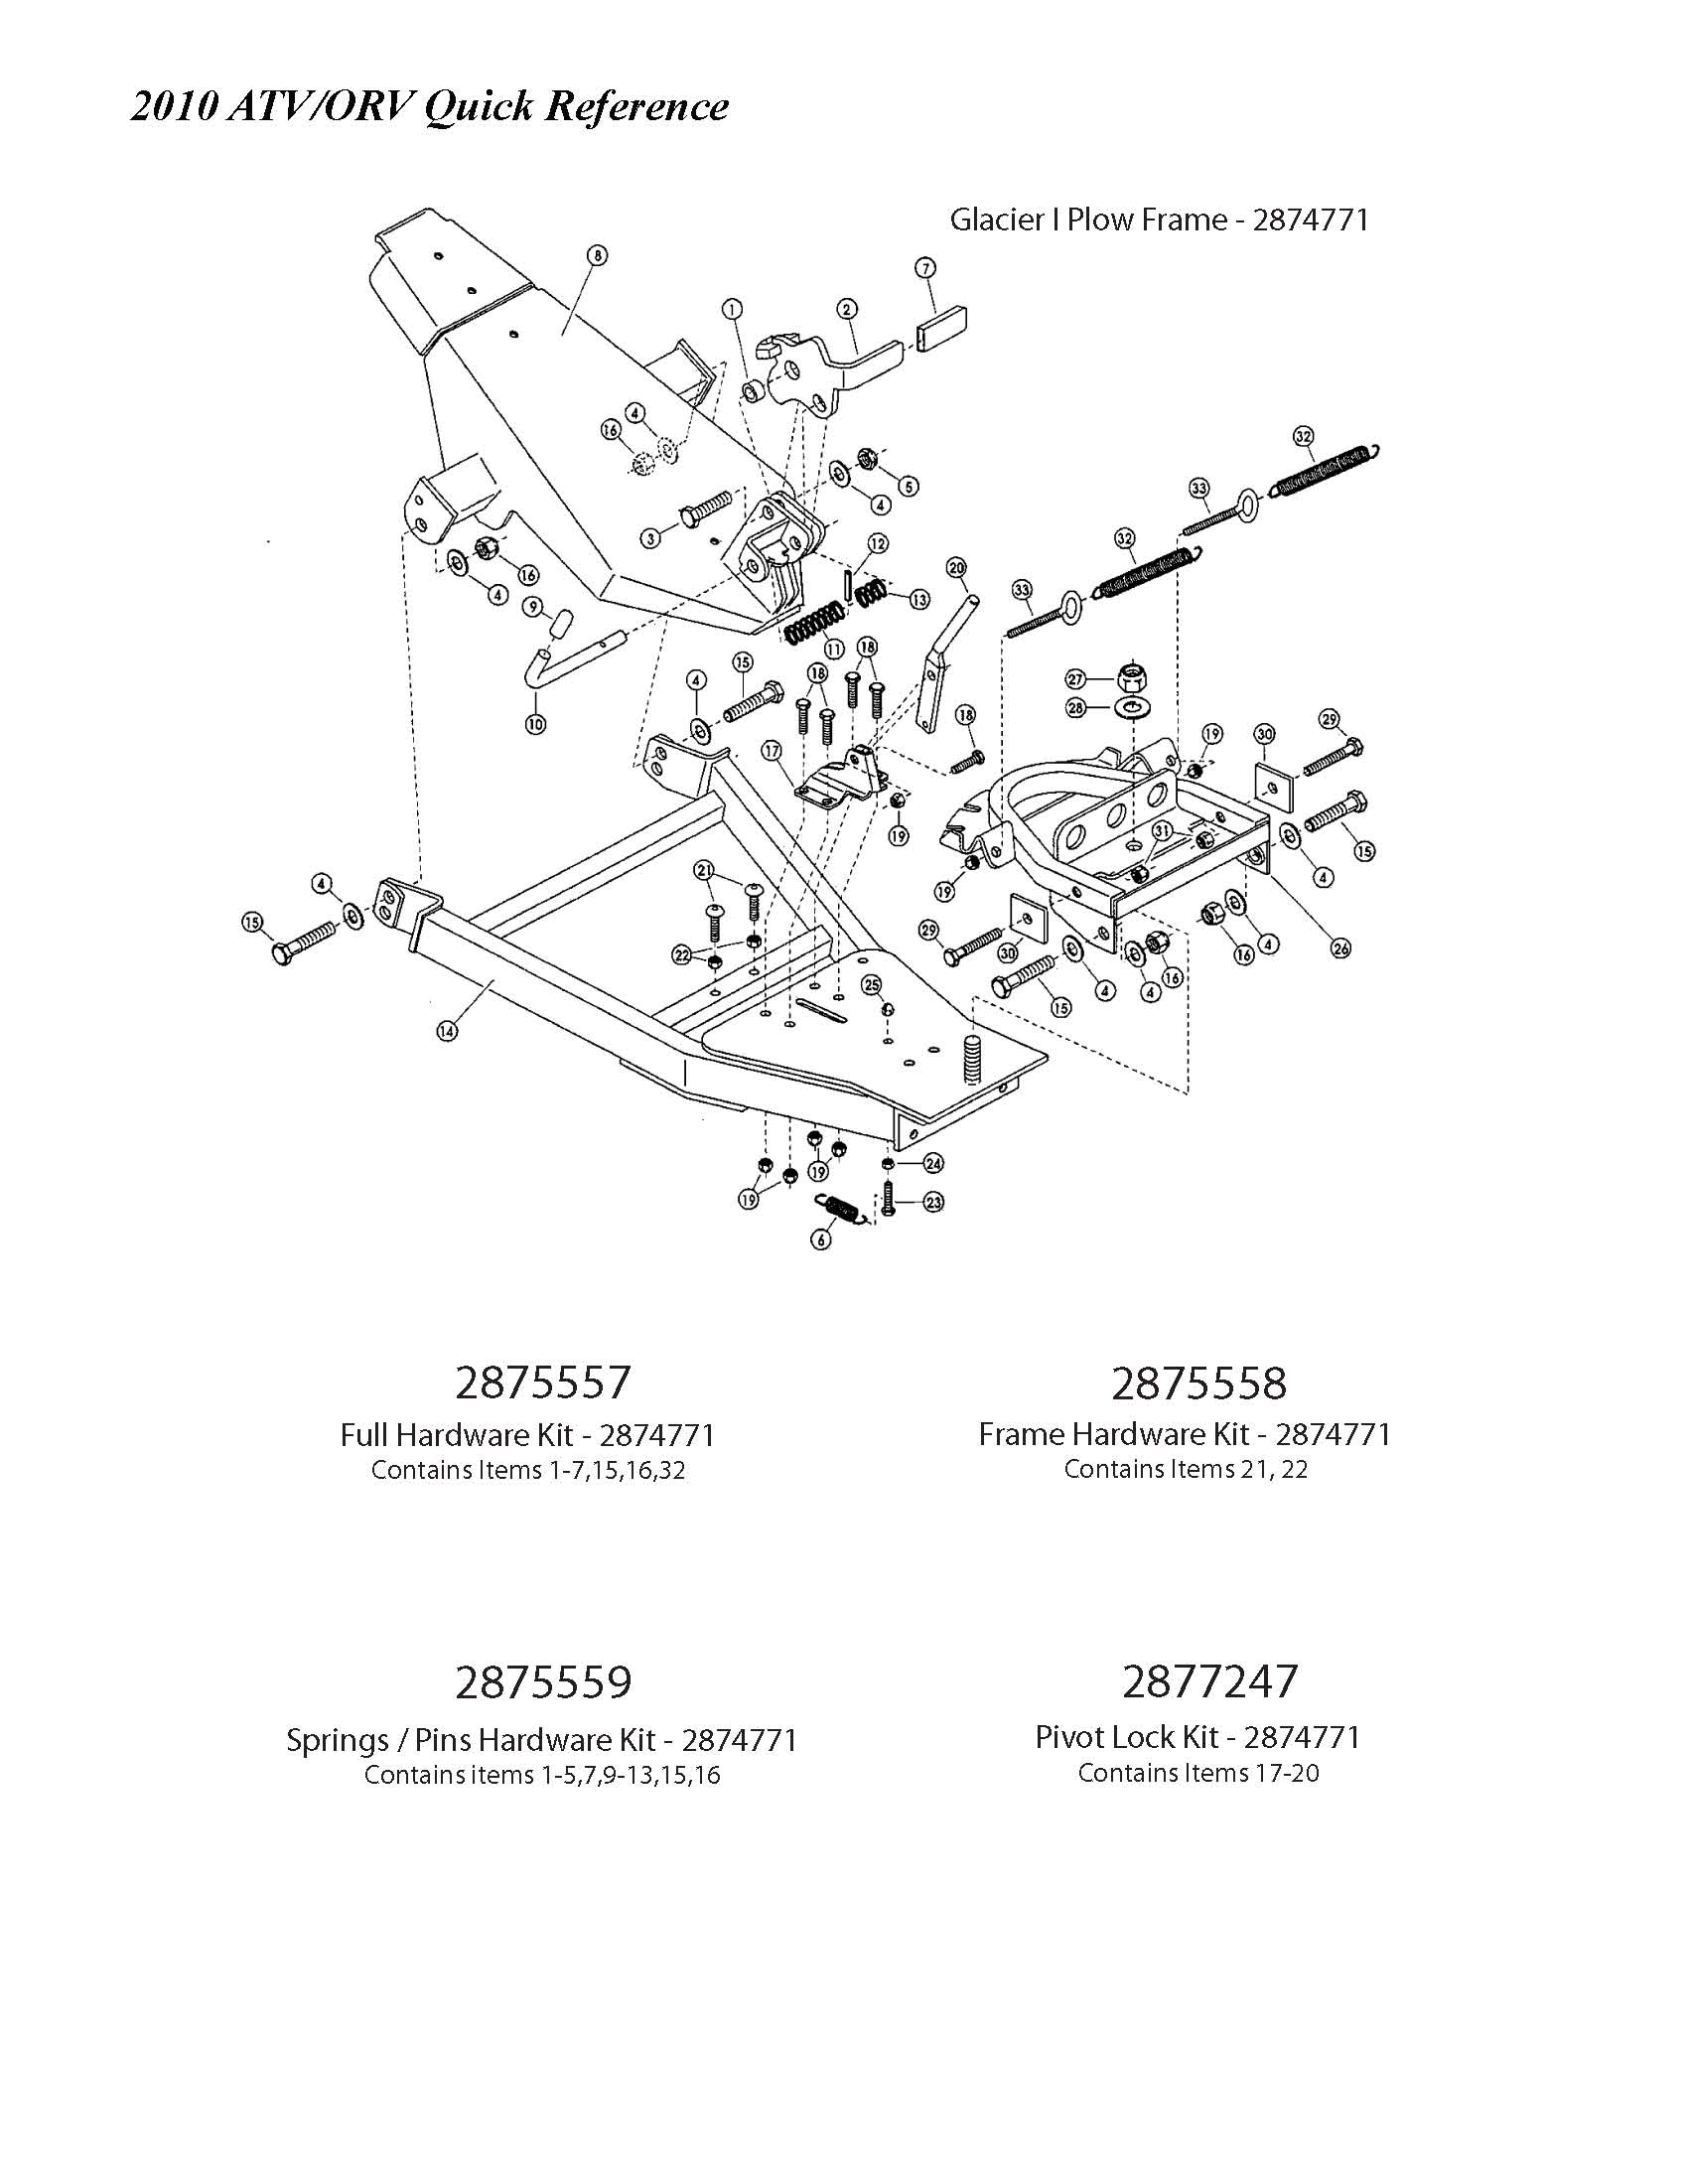 Plow Replacement Parts Diagrams Motor Repalcement Parts And Diagram